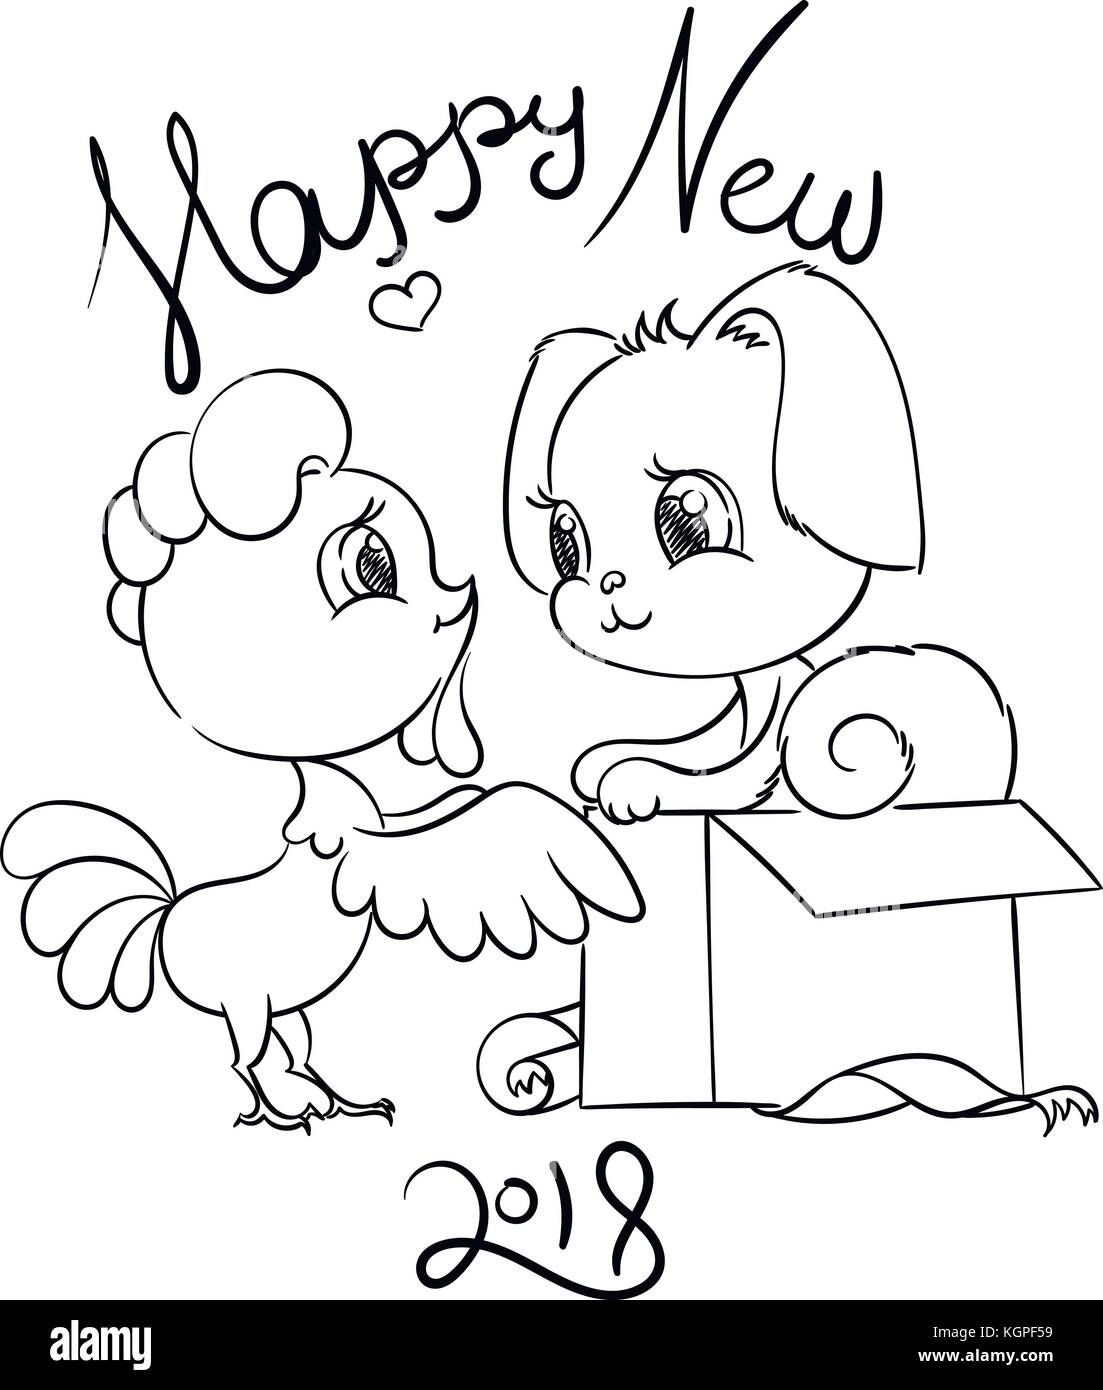 Funny cartoon card with dog and rooster. Symbols of 2017 and 2018 ...